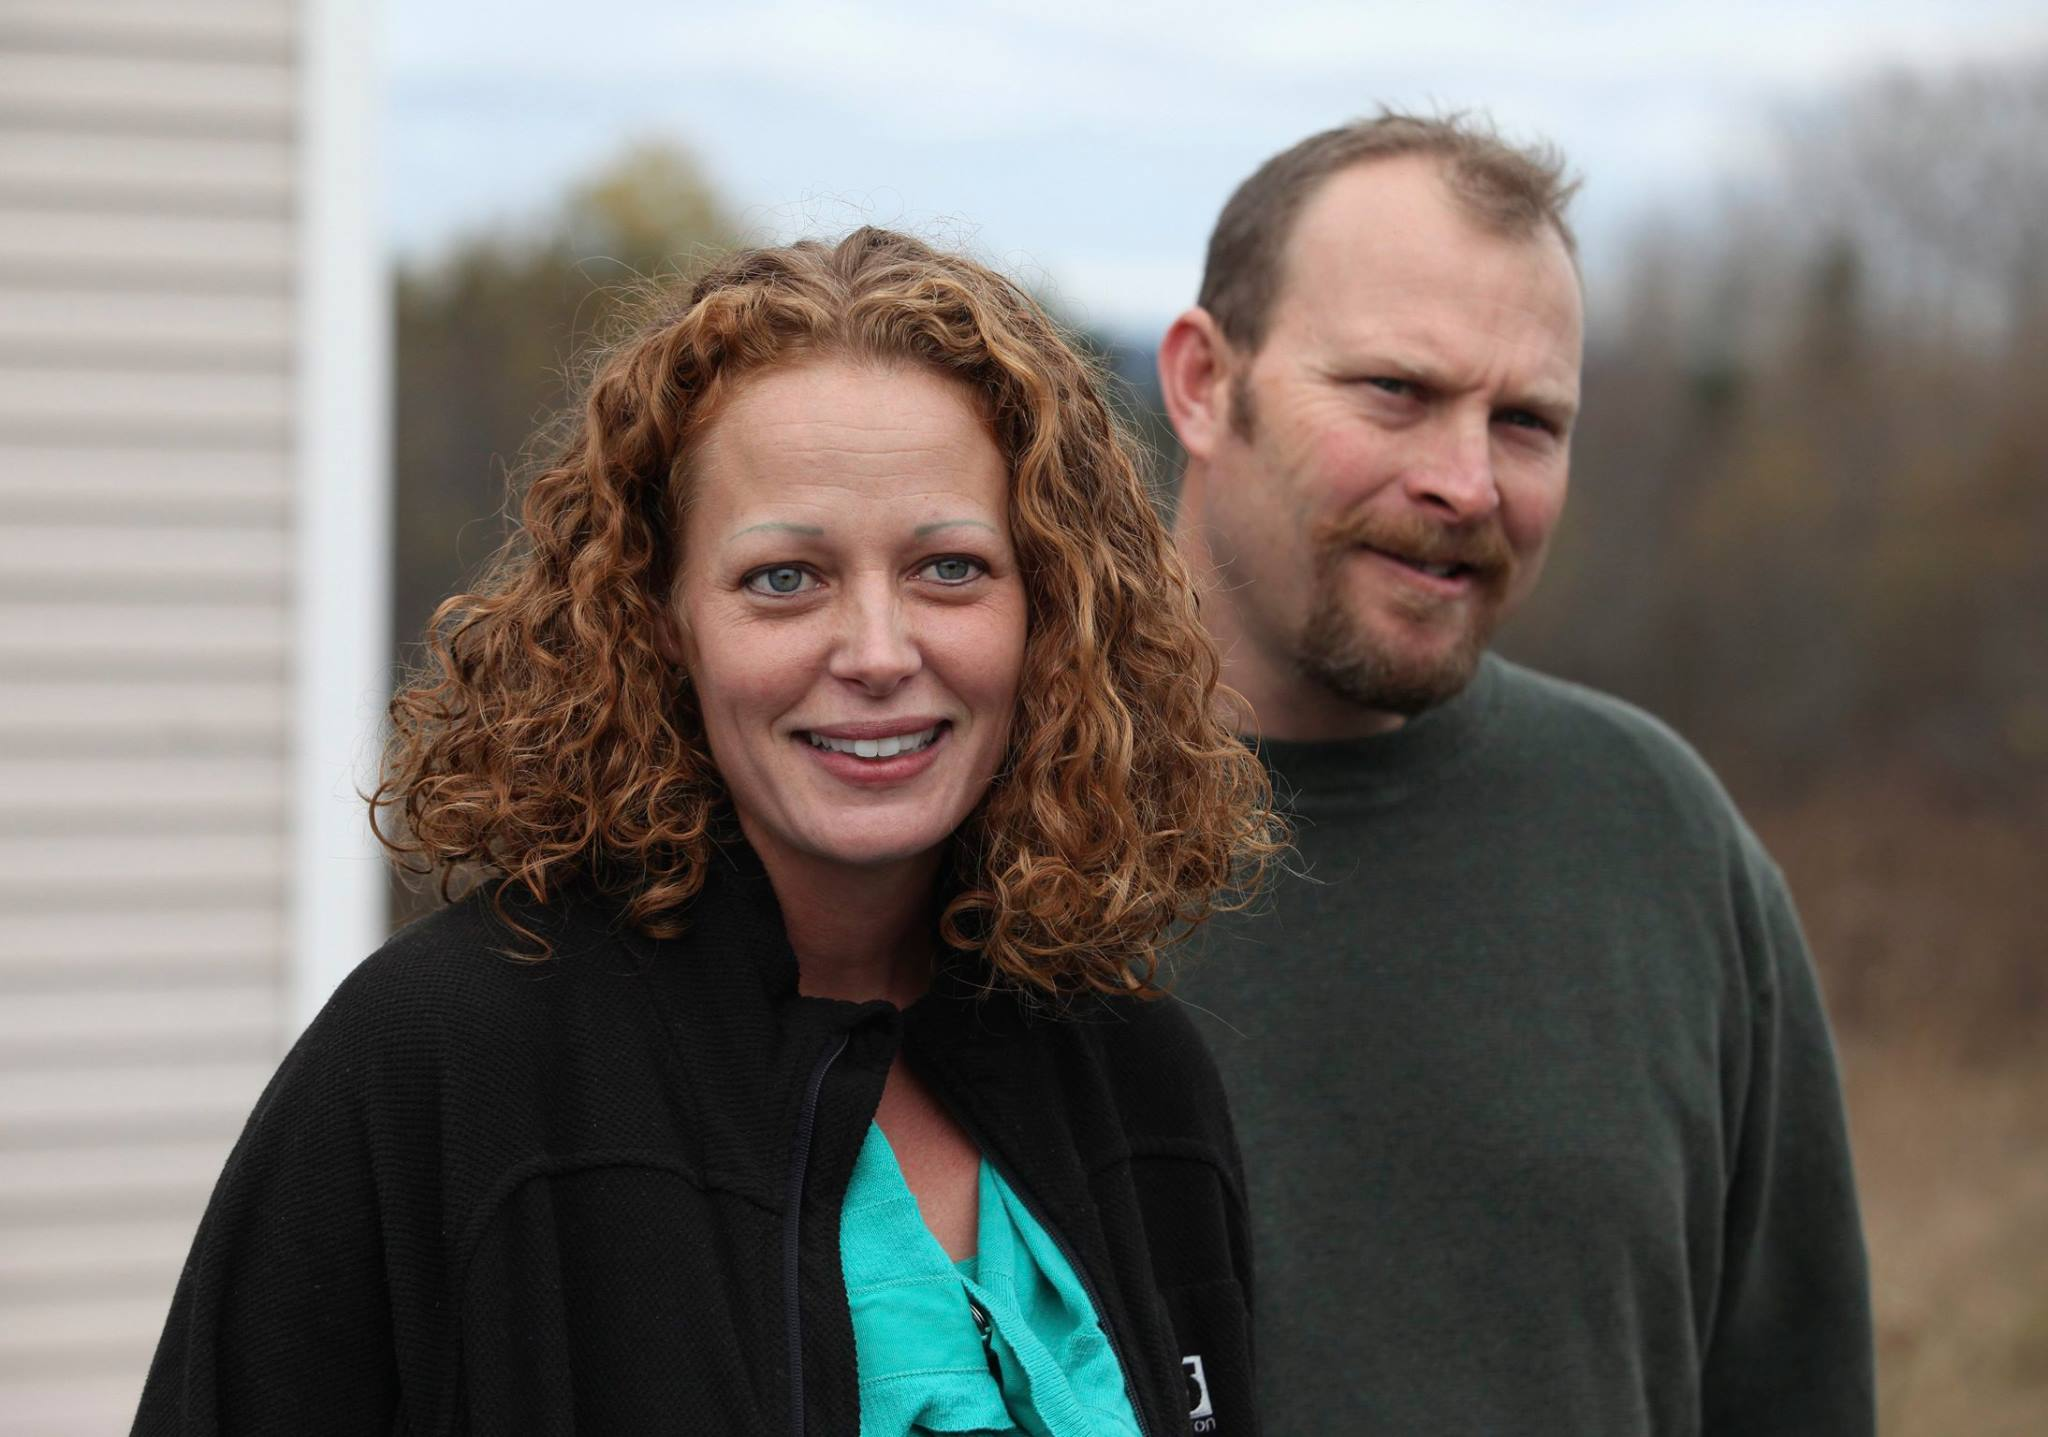 Ebola nurse Kaci Hickox reaches settlement with state of Maine after refusing quarantine